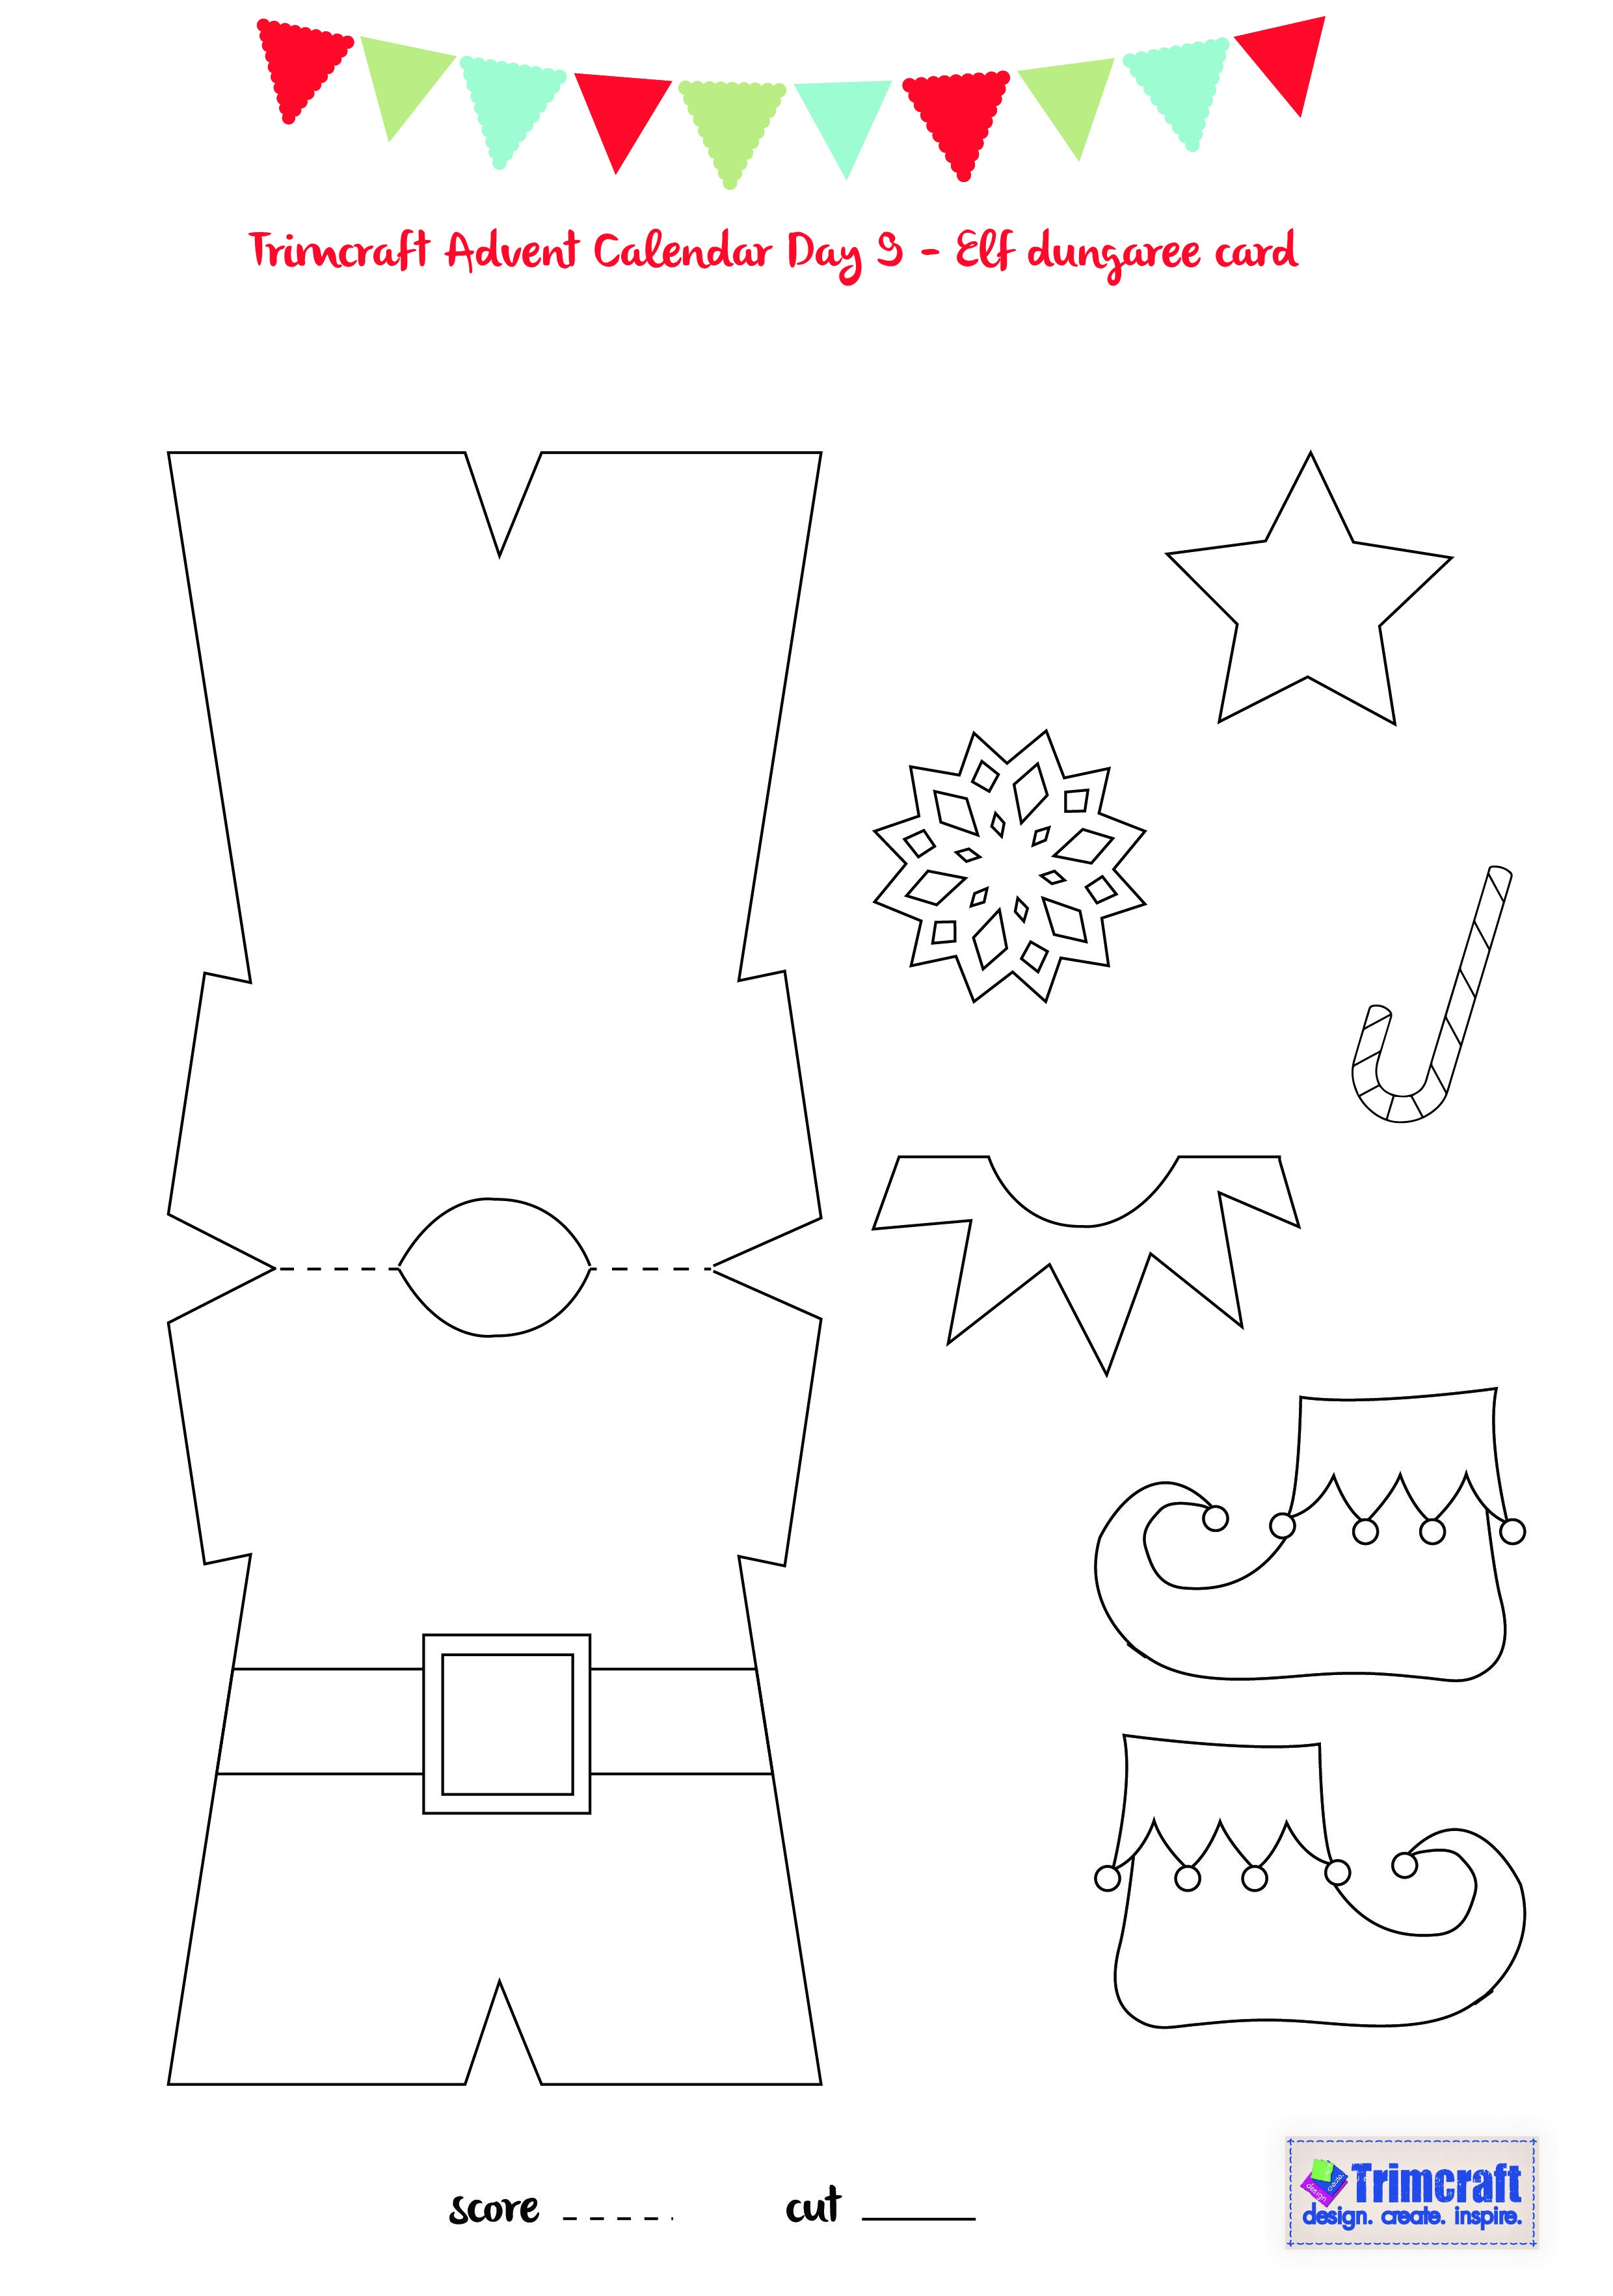 Trimcraft Advent Calendar Day 9 - Elf Card Template | Winter - Free Printable Elf Pattern